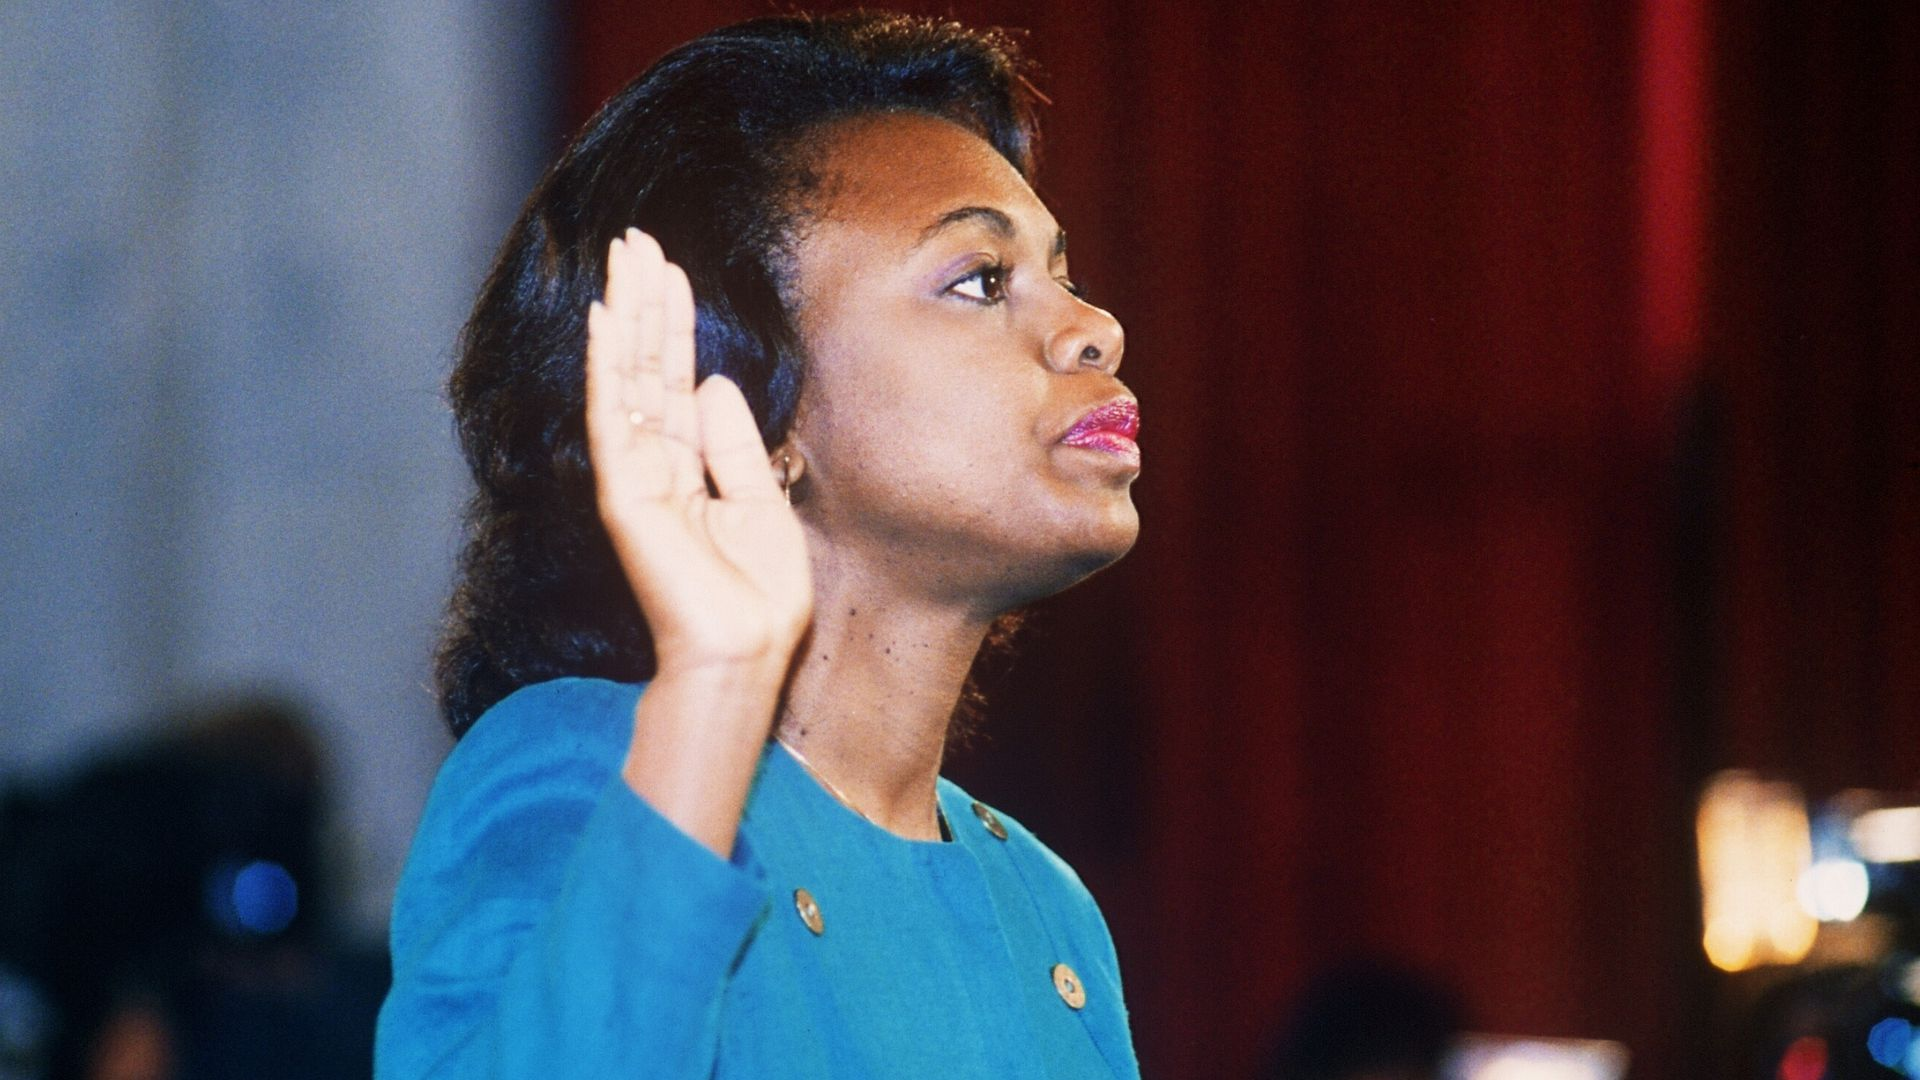 An old photo of Anita Hill testifying in front of the Senate in a bright blue suit